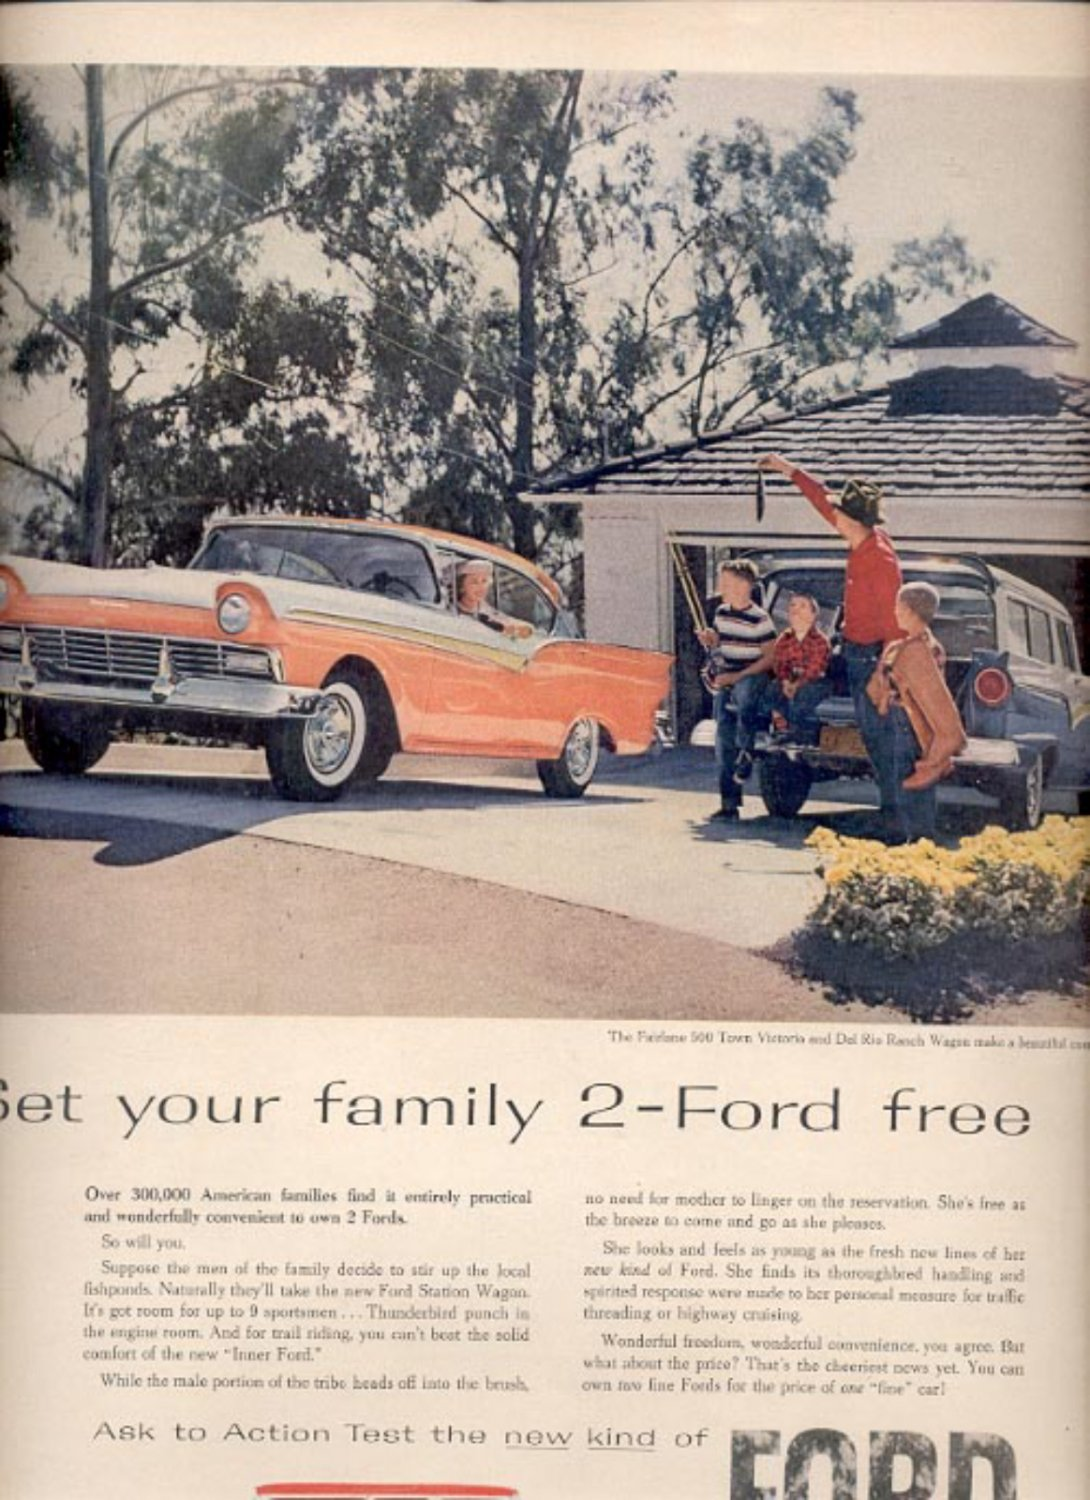 1957    Ford Fairlane 500 Victoria and Del Rio Ranch Wagon  ad (# 4980)